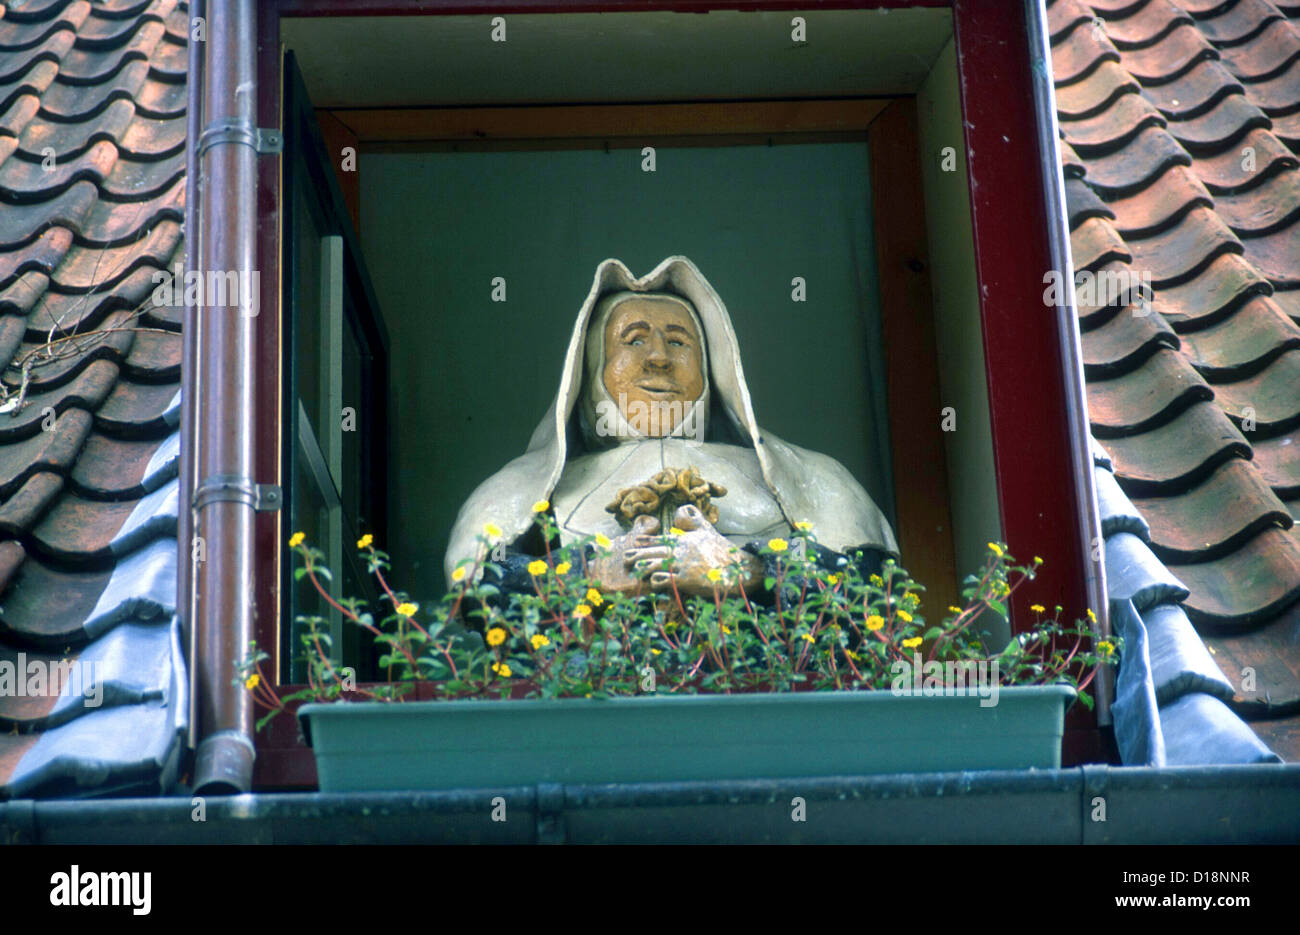 Effigy of The Countess of Flanders founder The Beguinage of Bruges was founded in 1245 - Stock Image